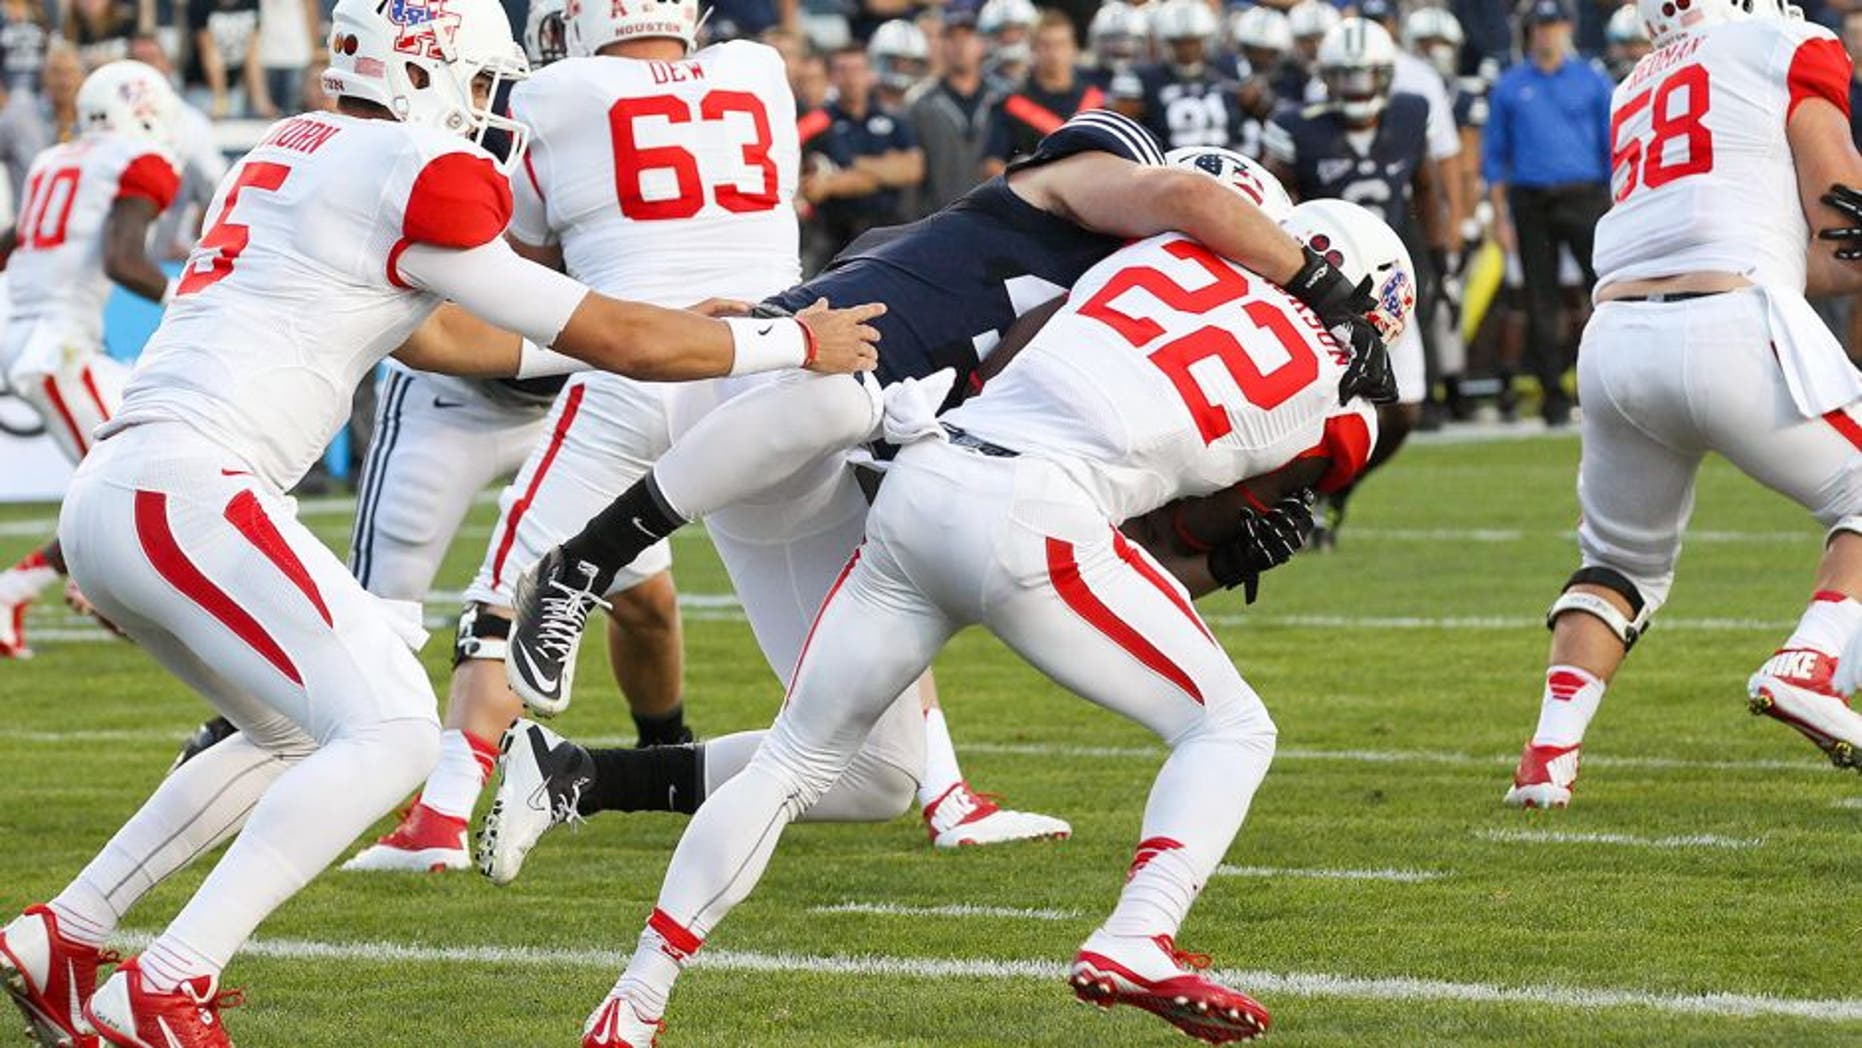 Sep 11, 2014; Provo, UT, USA; Brigham Young Cougars linebacker Zac Stout (47) tackles Houston Cougars running back Ryan Jackson (22) in the end zone and gets a safety during the first quarter at Lavell Edwards Stadium. Mandatory Credit: Chris Nicoll-USA TODAY Sports